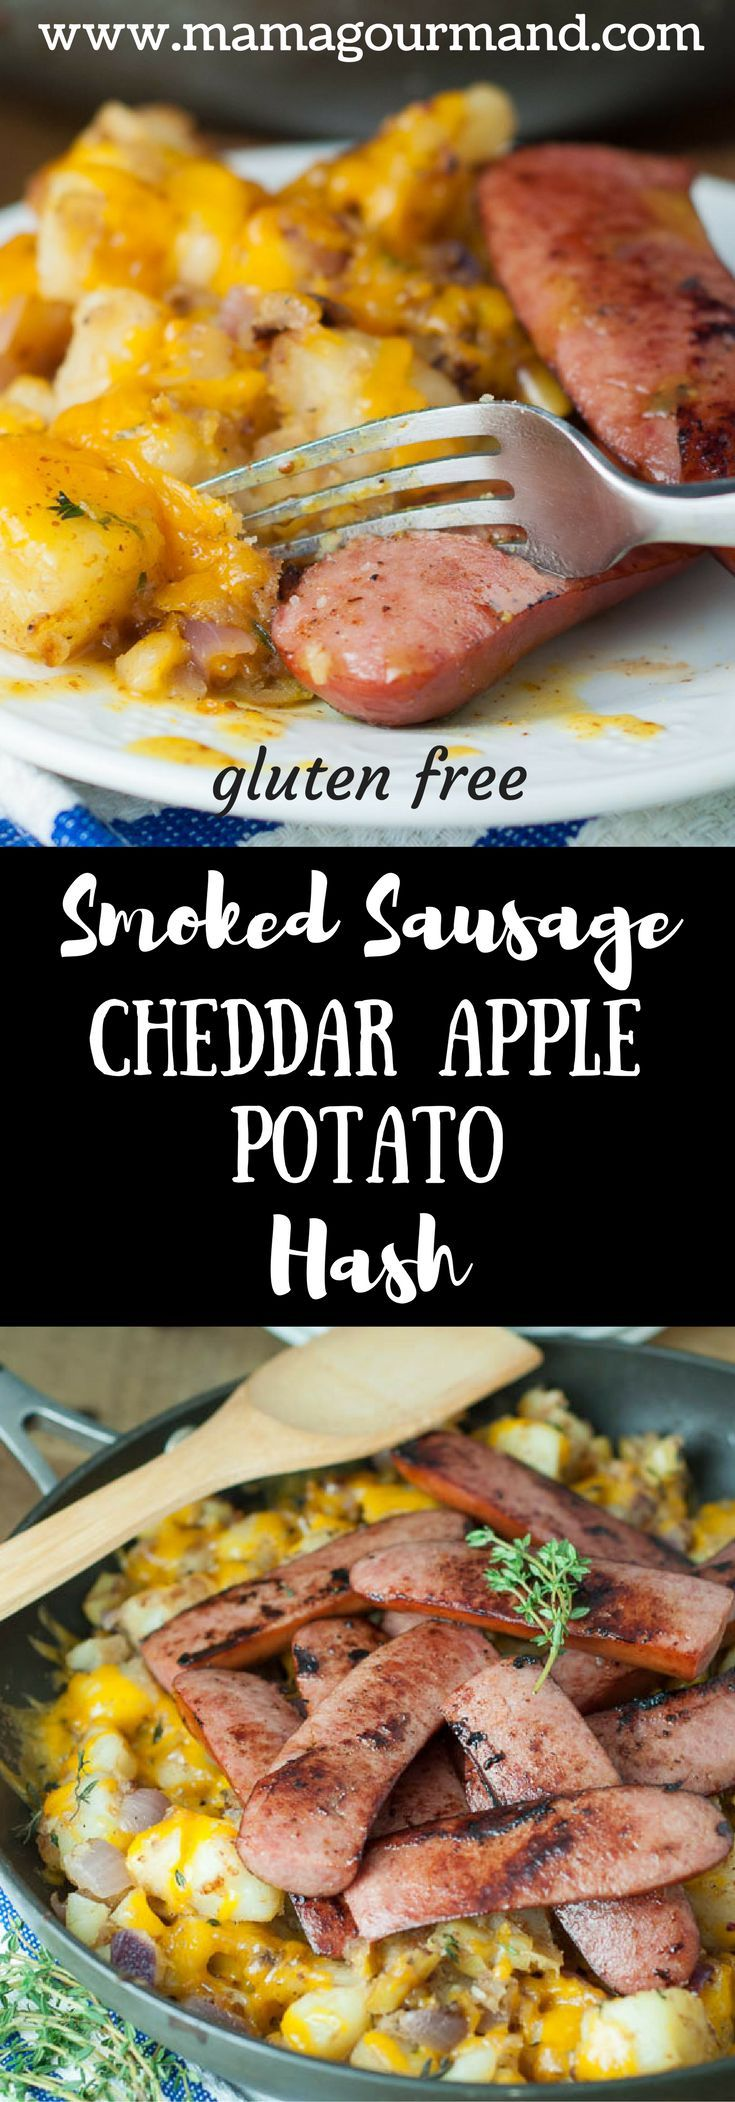 Smoked Sausage with Cheddar Apple Potato Hash is an easy skillet meal your family will love. Smoked sausage on a bed of apple, potato hash with cheddar on top. Yummy! http://www.mamagourmand.com